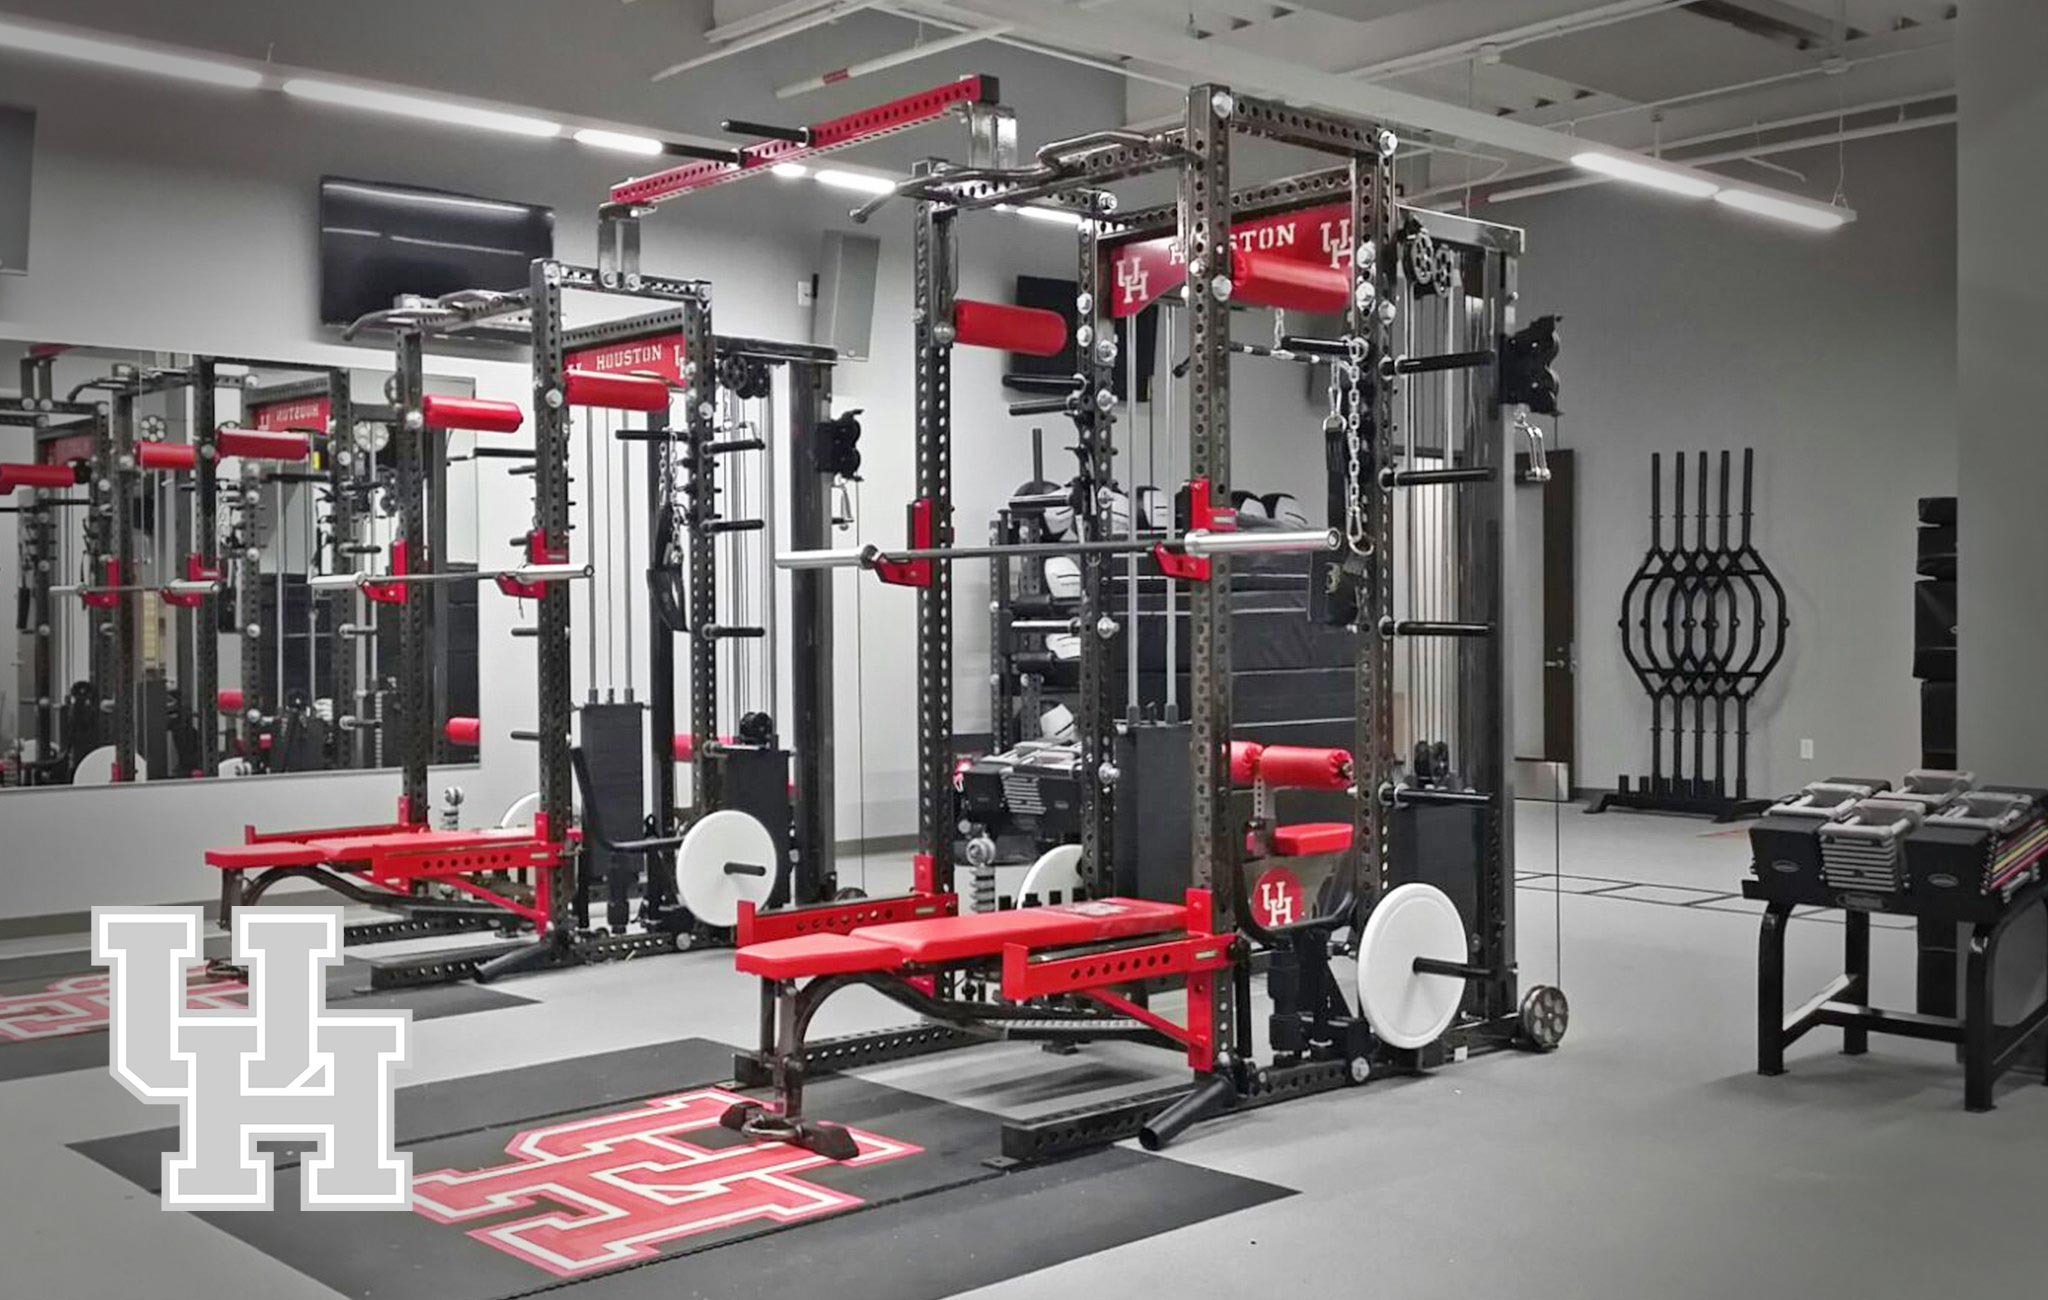 University of Houston Sorinex strength and conditioning facility